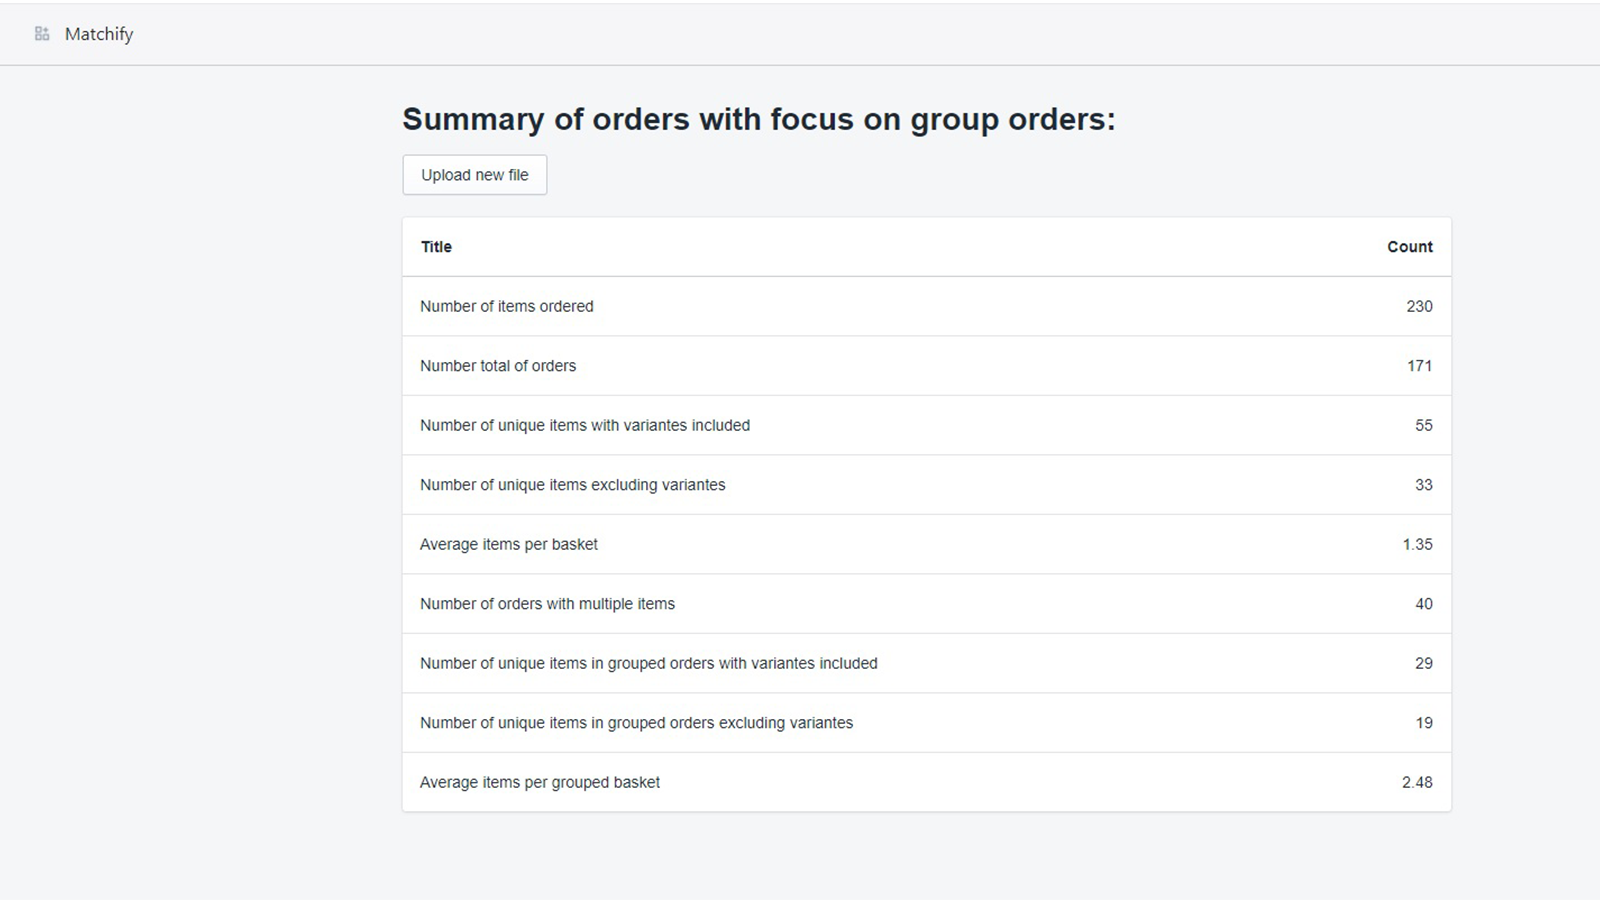 Get summary statistics focusing on orders with multiple items